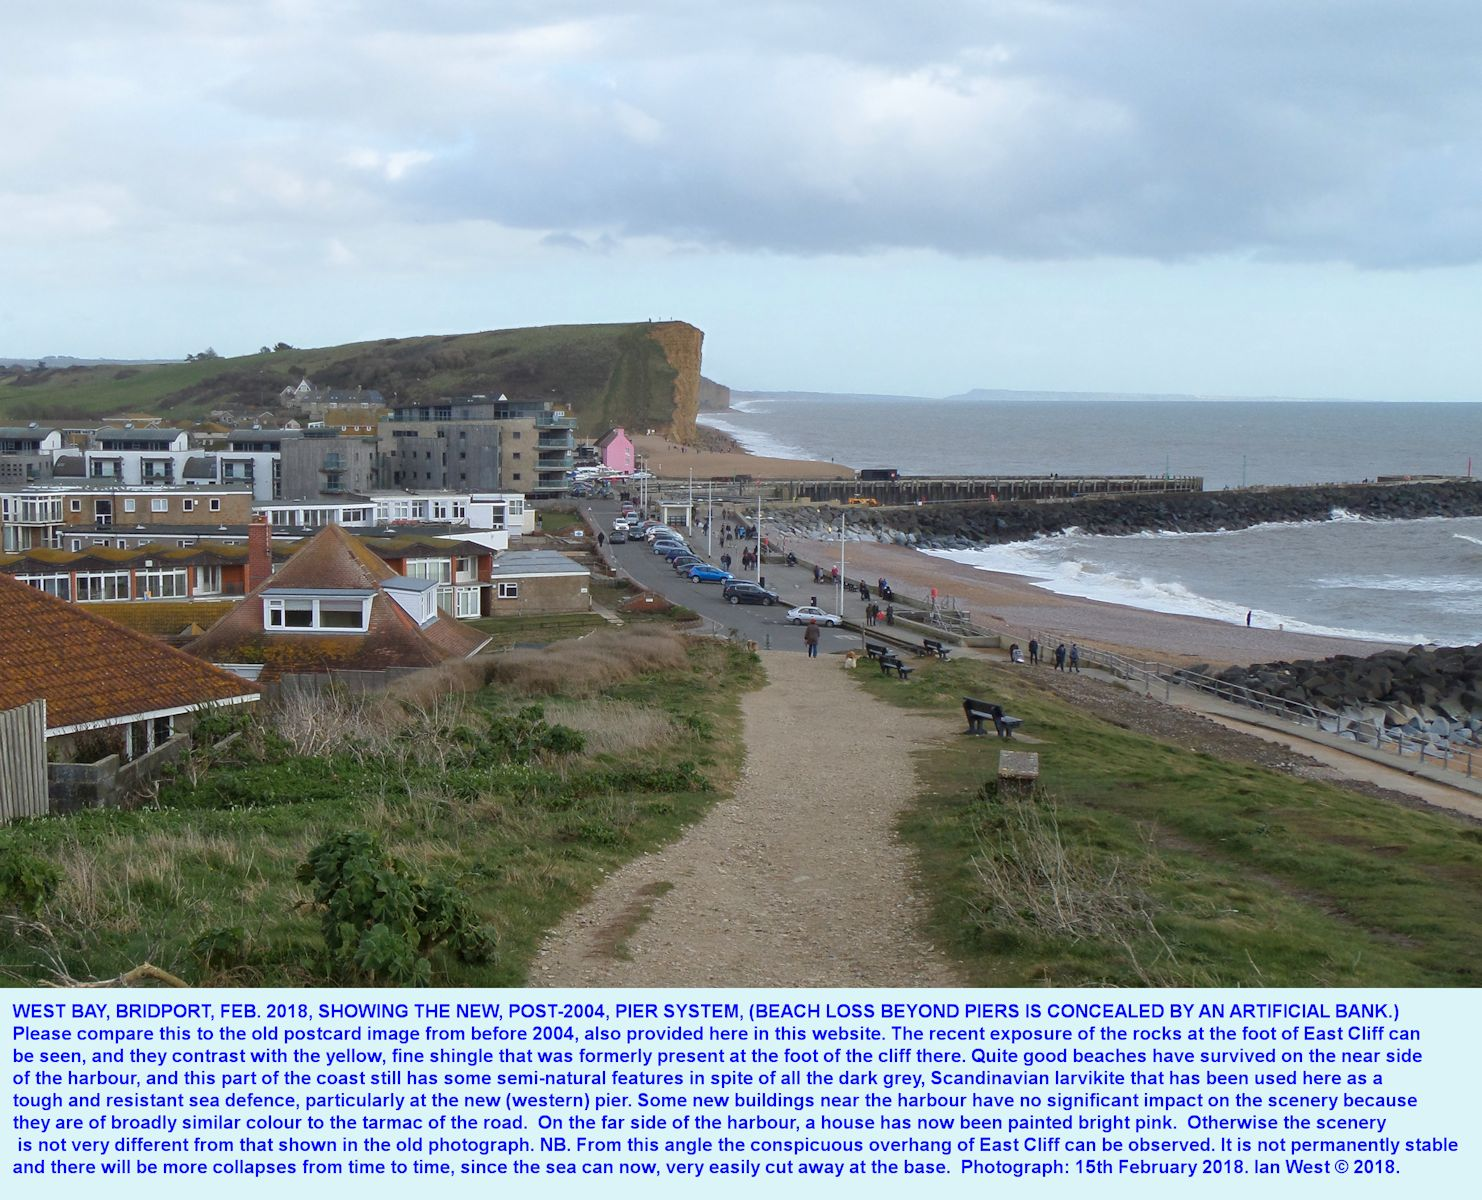 View, of 2018, looking eastward of the piers and harbour entrance of West Bay, Bridport, for comparison with an older photograph, above, from the same location